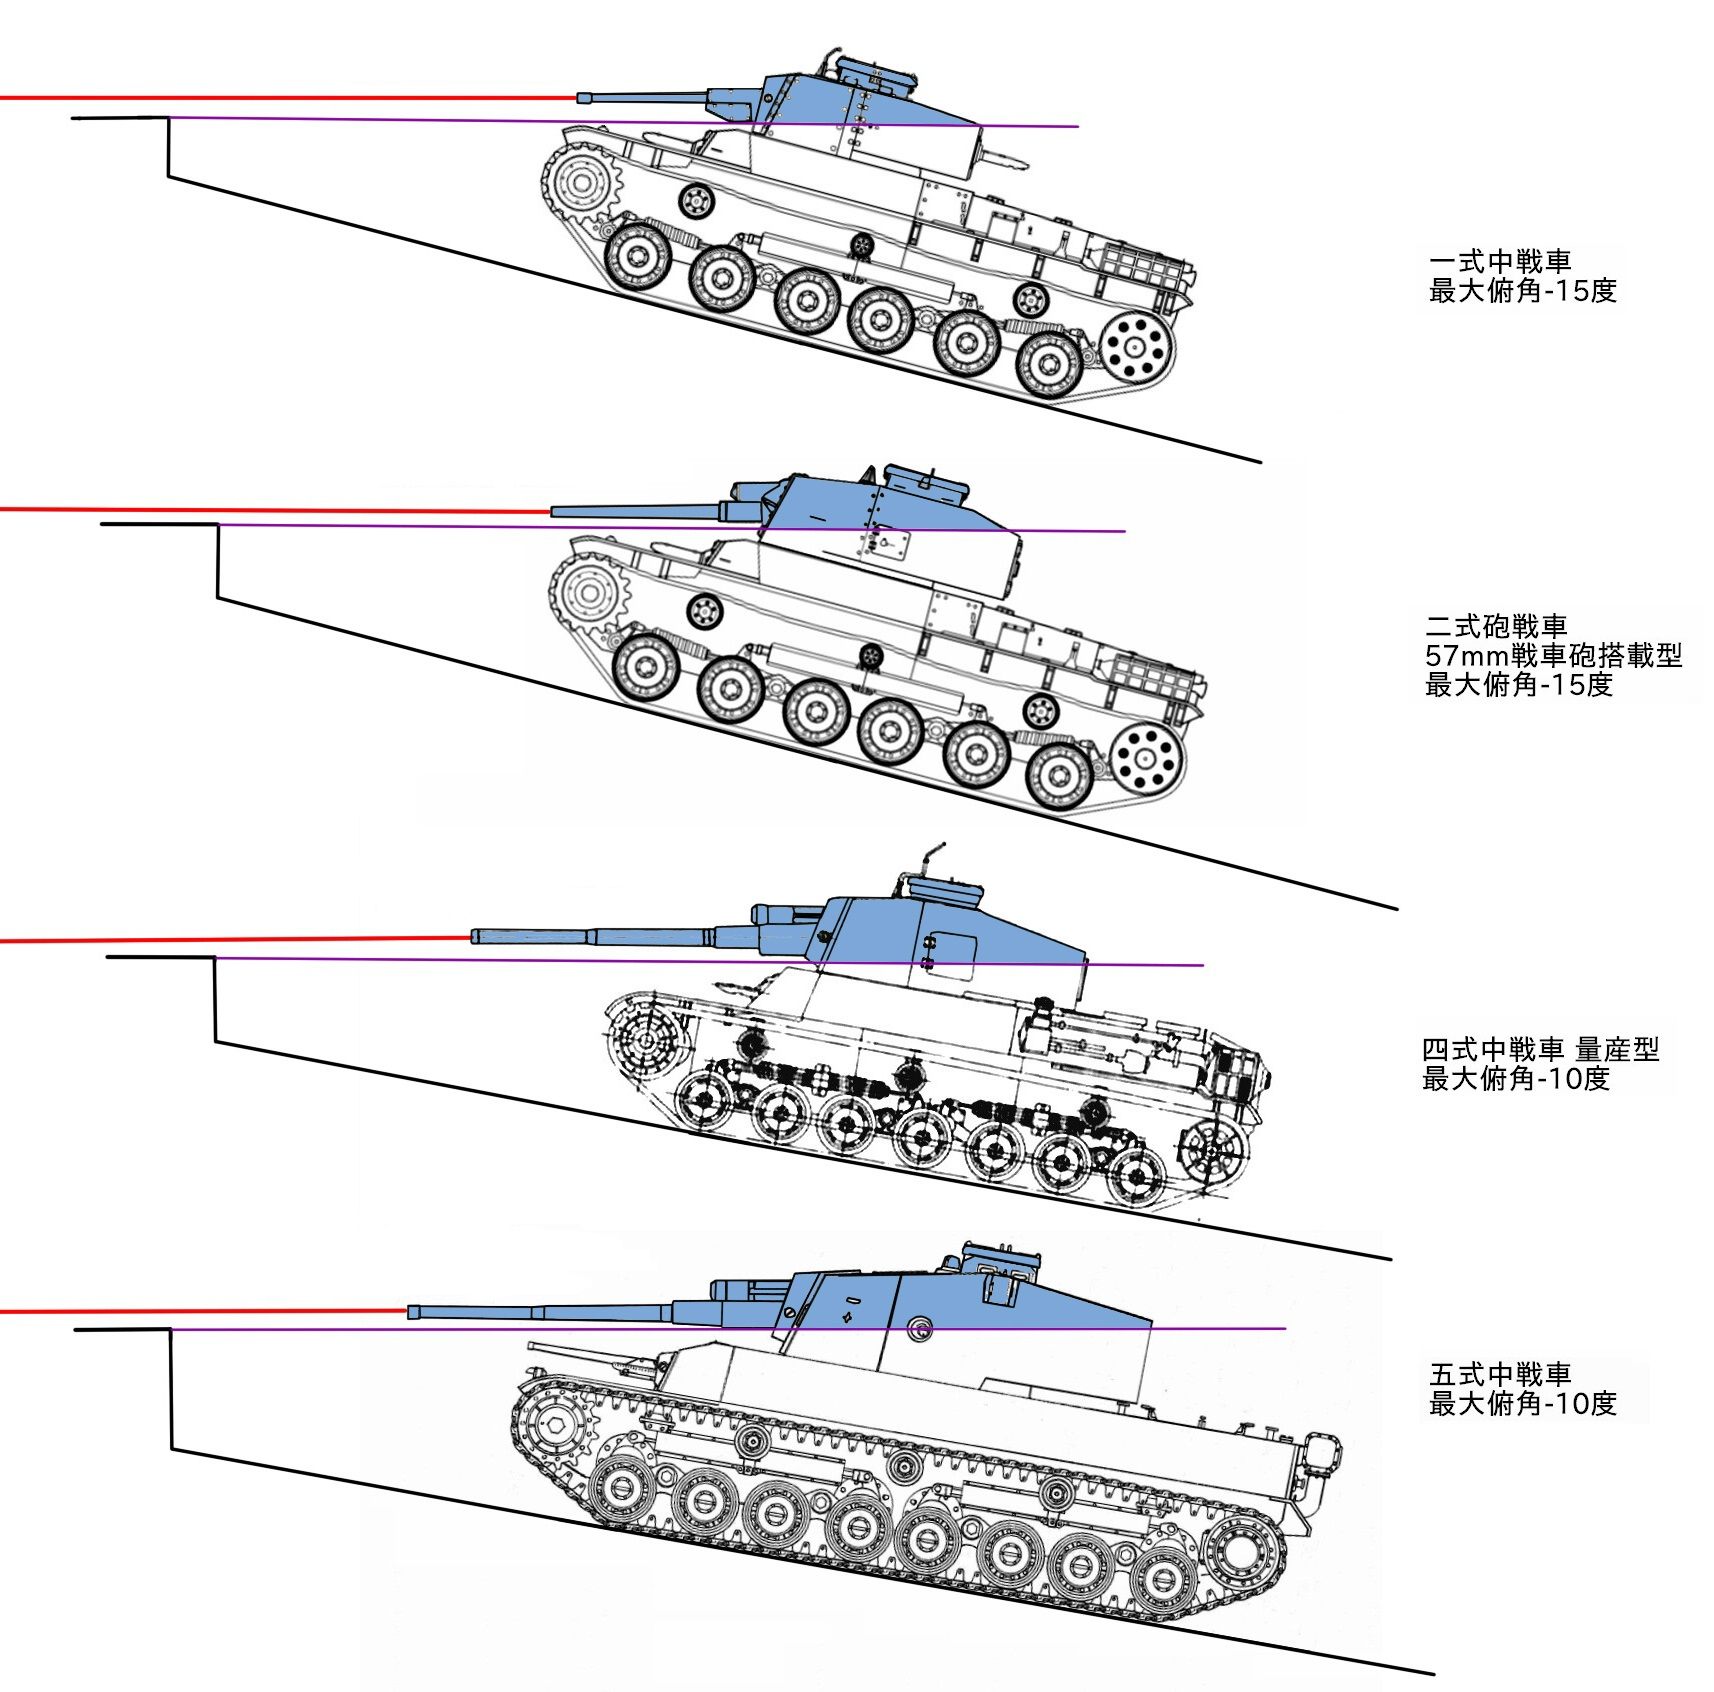 da tank diagram best wiring library Drawings of DaVinci War Machines shown diagram reviewing the given depression of known japanese medium tanks in scenario situations